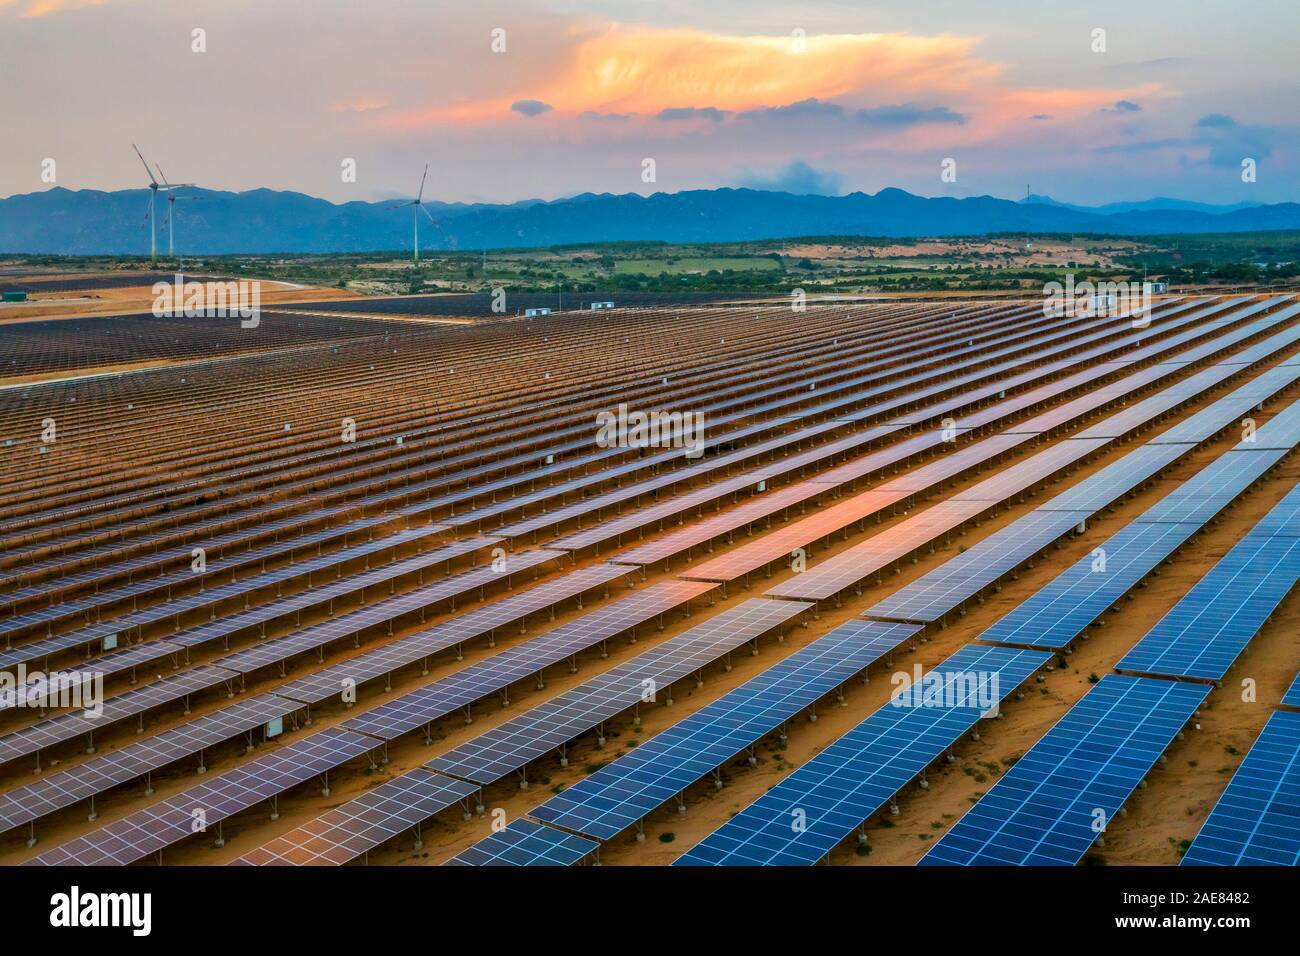 Aerial view of Solar panel, alternative electricity source - concept of sustainable resources on Phuoc Dinh, Ninh Phuoc, Ninh Thuan, Vietnam Stock Photo